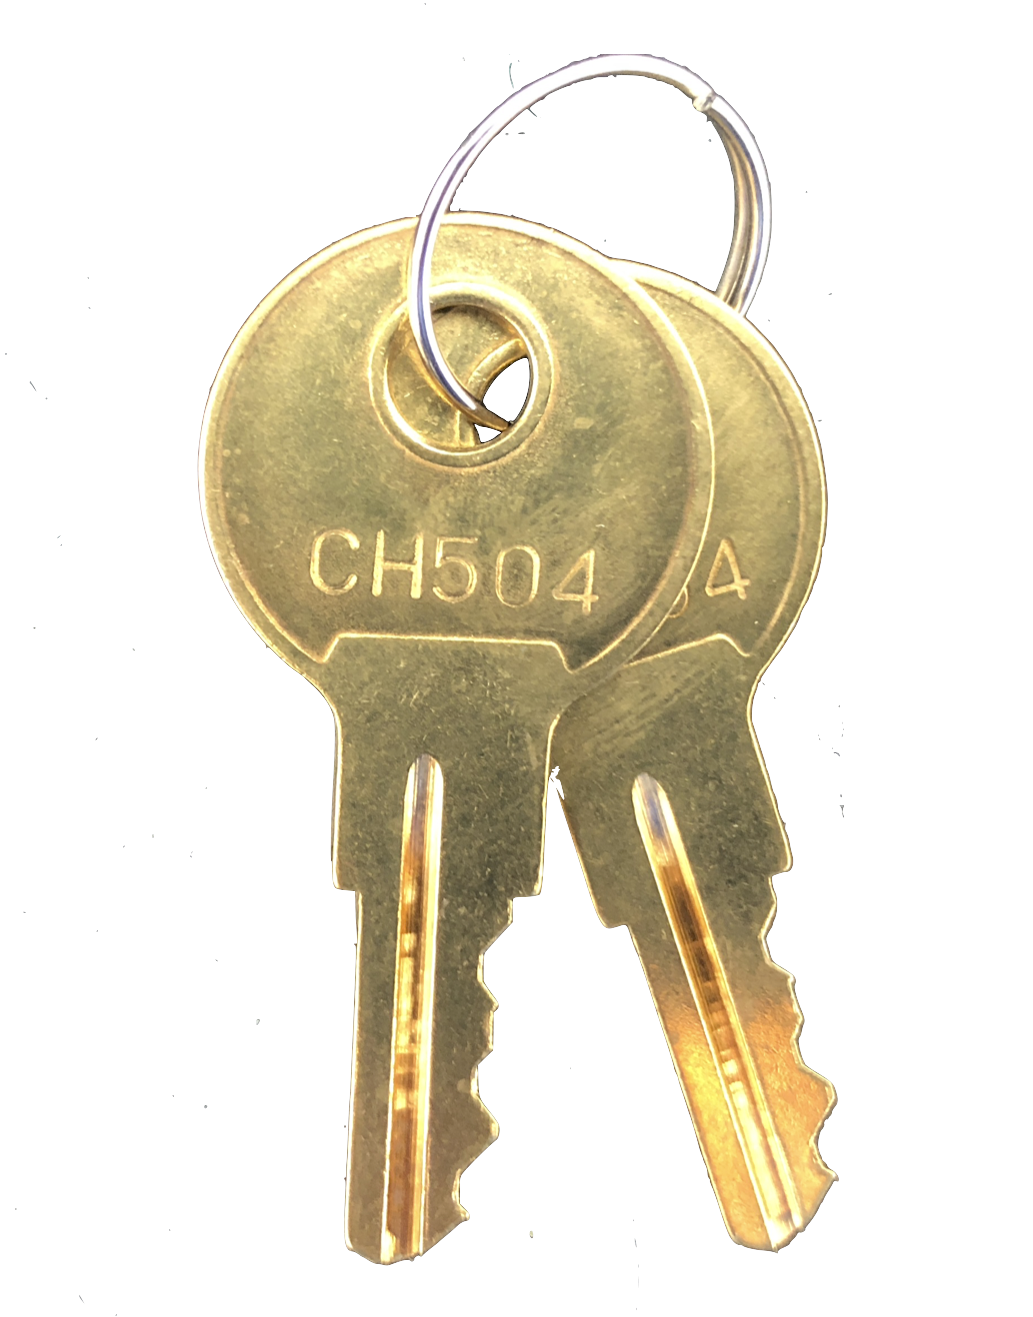 Replacement Key CH504